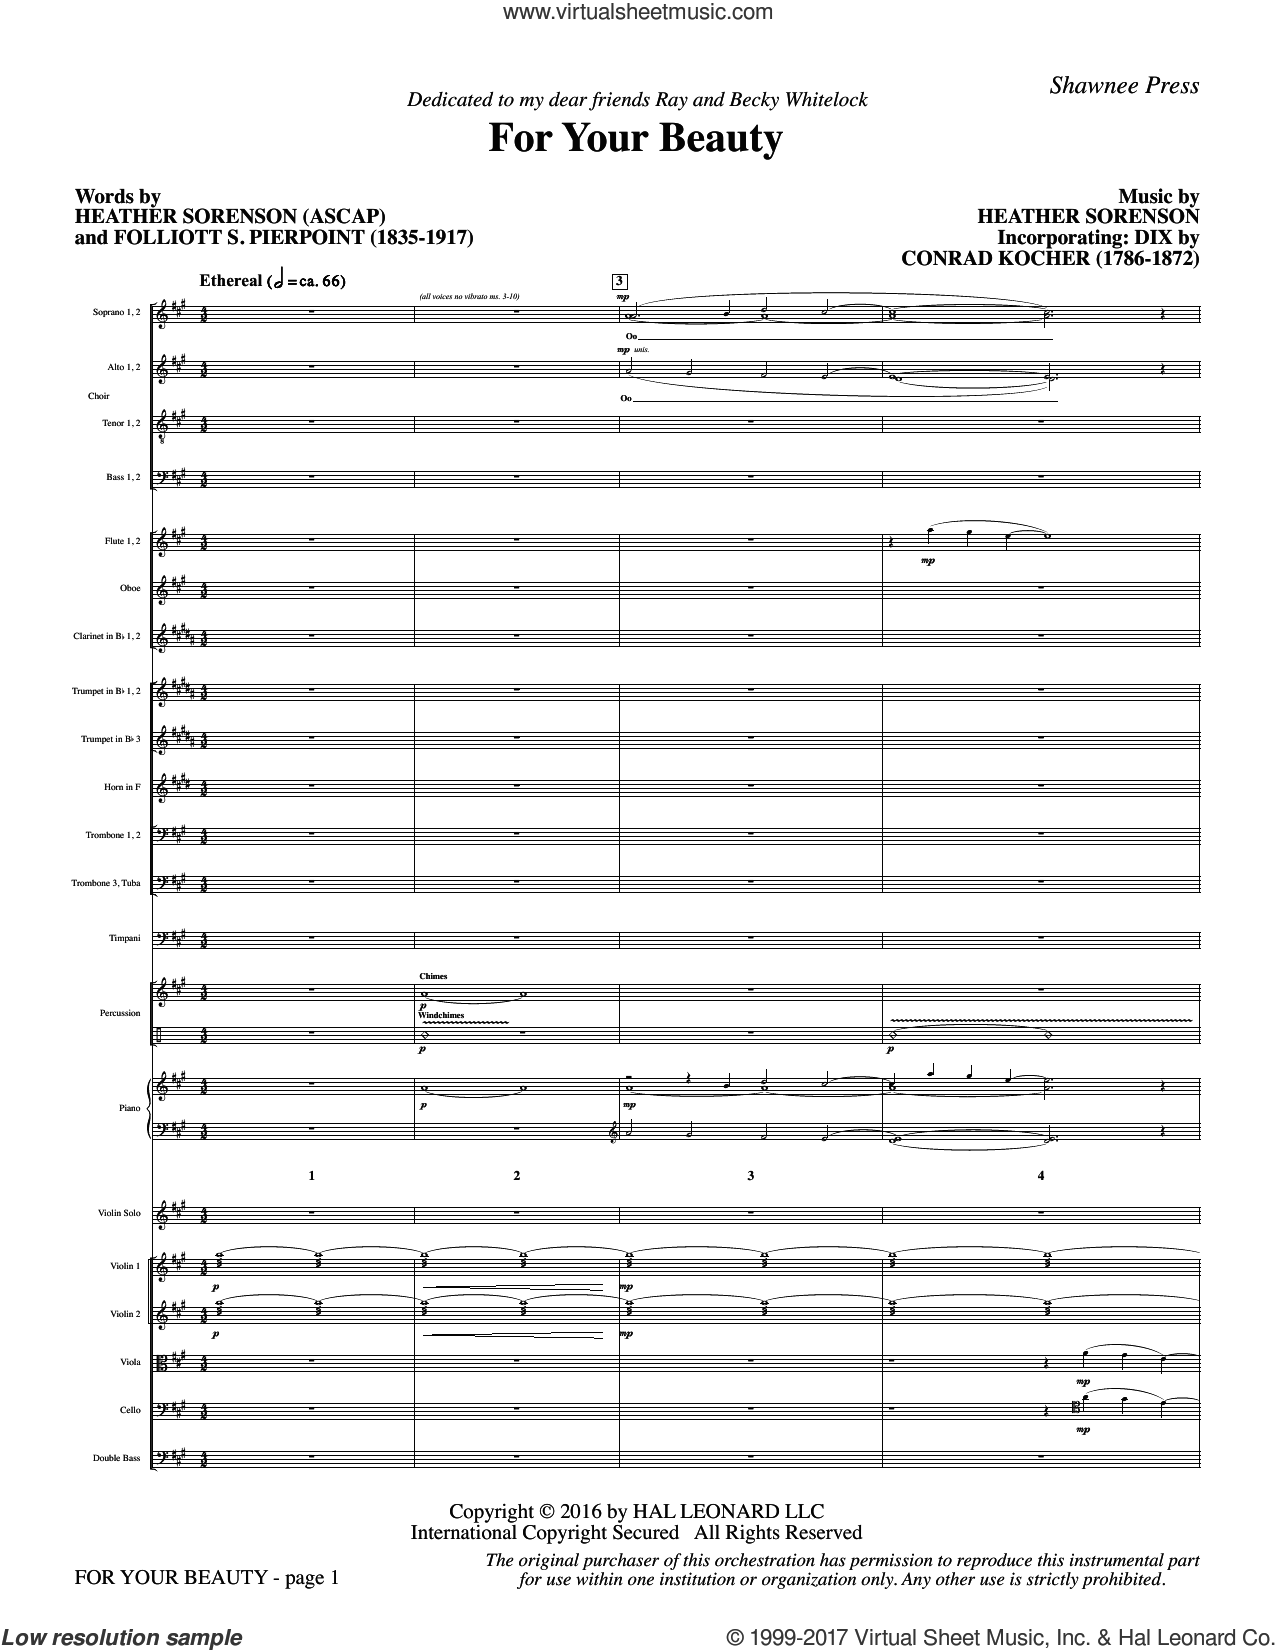 For Your Beauty (COMPLETE) sheet music for orchestra/band by Heather Sorenson, Conrad Kocher and Folliott S. Pierpoint, intermediate skill level